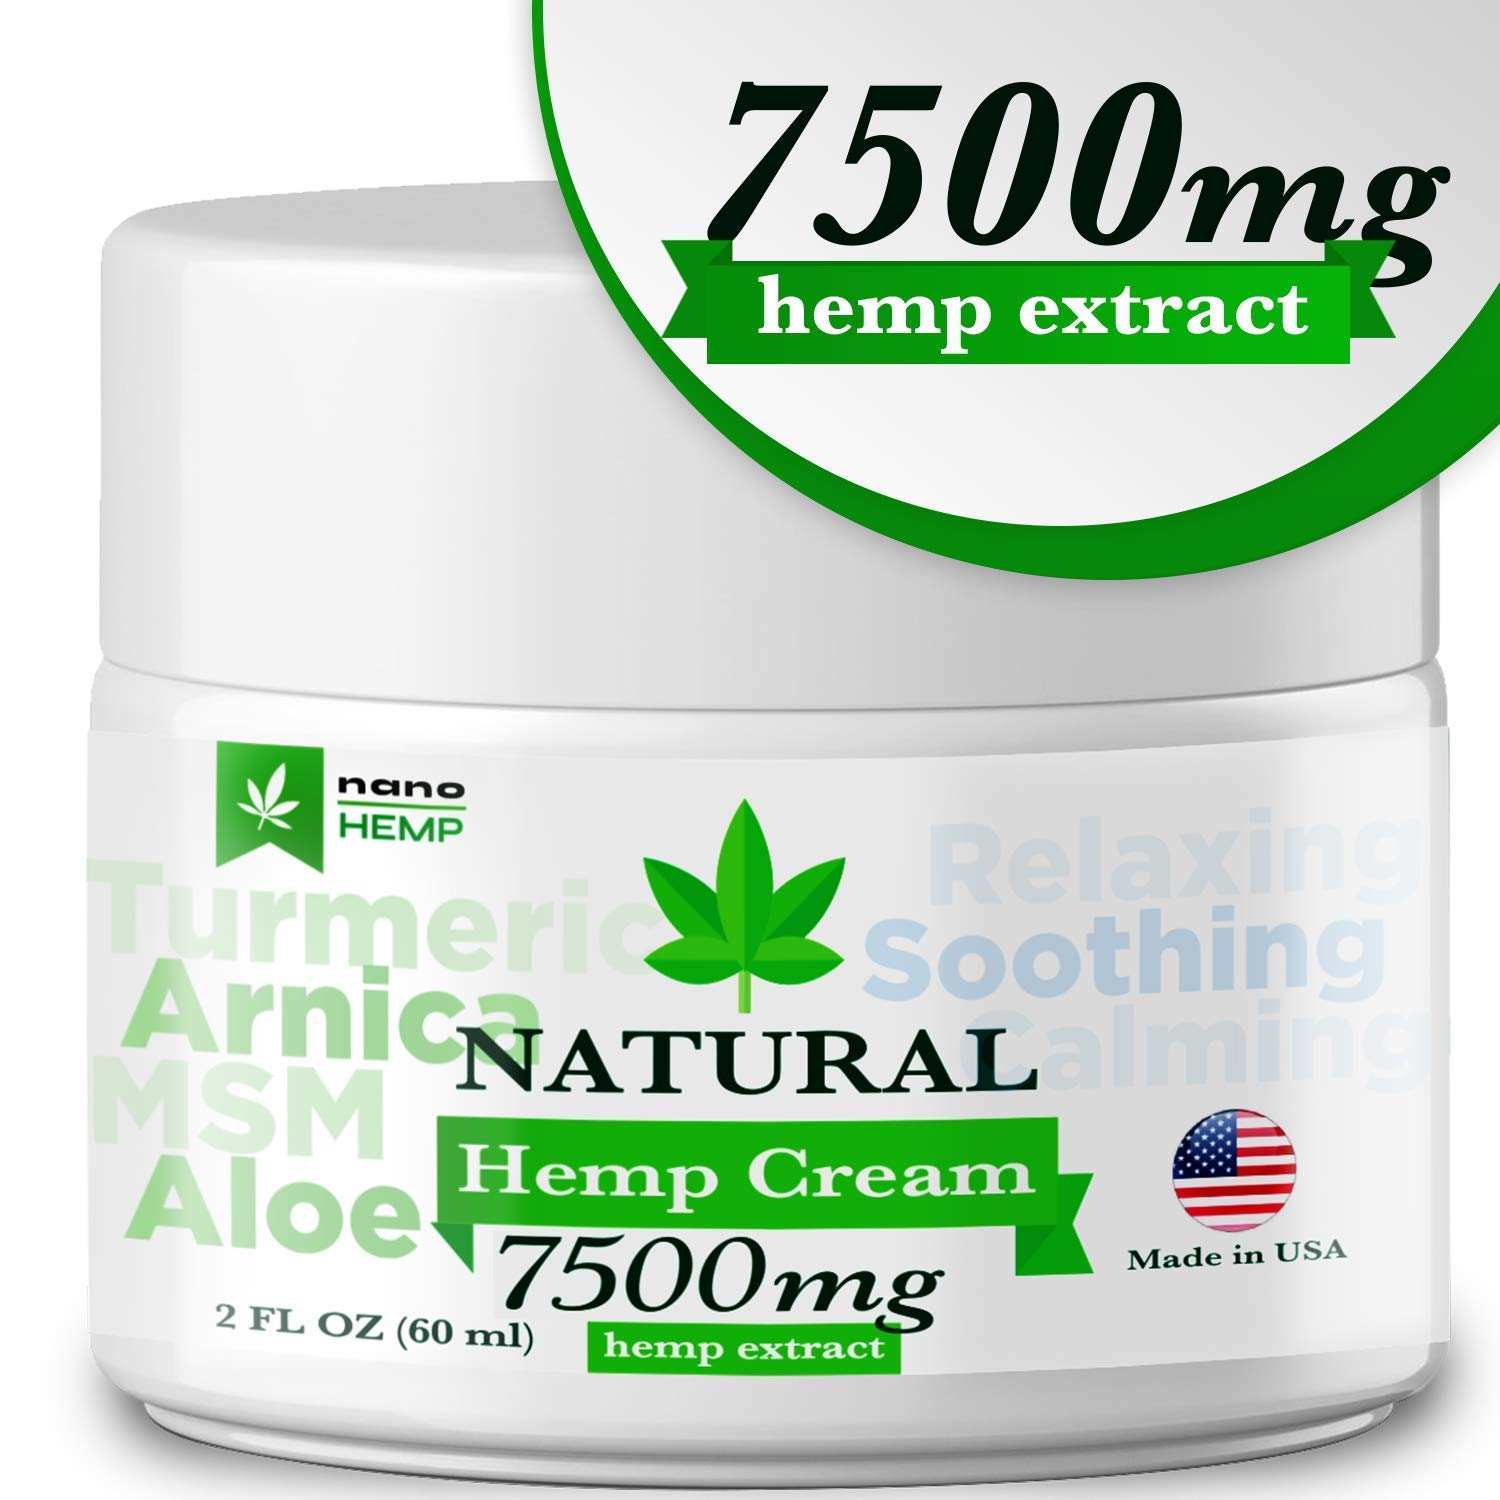 Organic Hemp Pain Relief Cream, 7500 Mg, Made in USA, Non-GMO, Natural Hemp Extract Cream for Joint, Muscle, Back, Neck, Knee Pain with Arnica, Aloe, MSM & EMU Oil